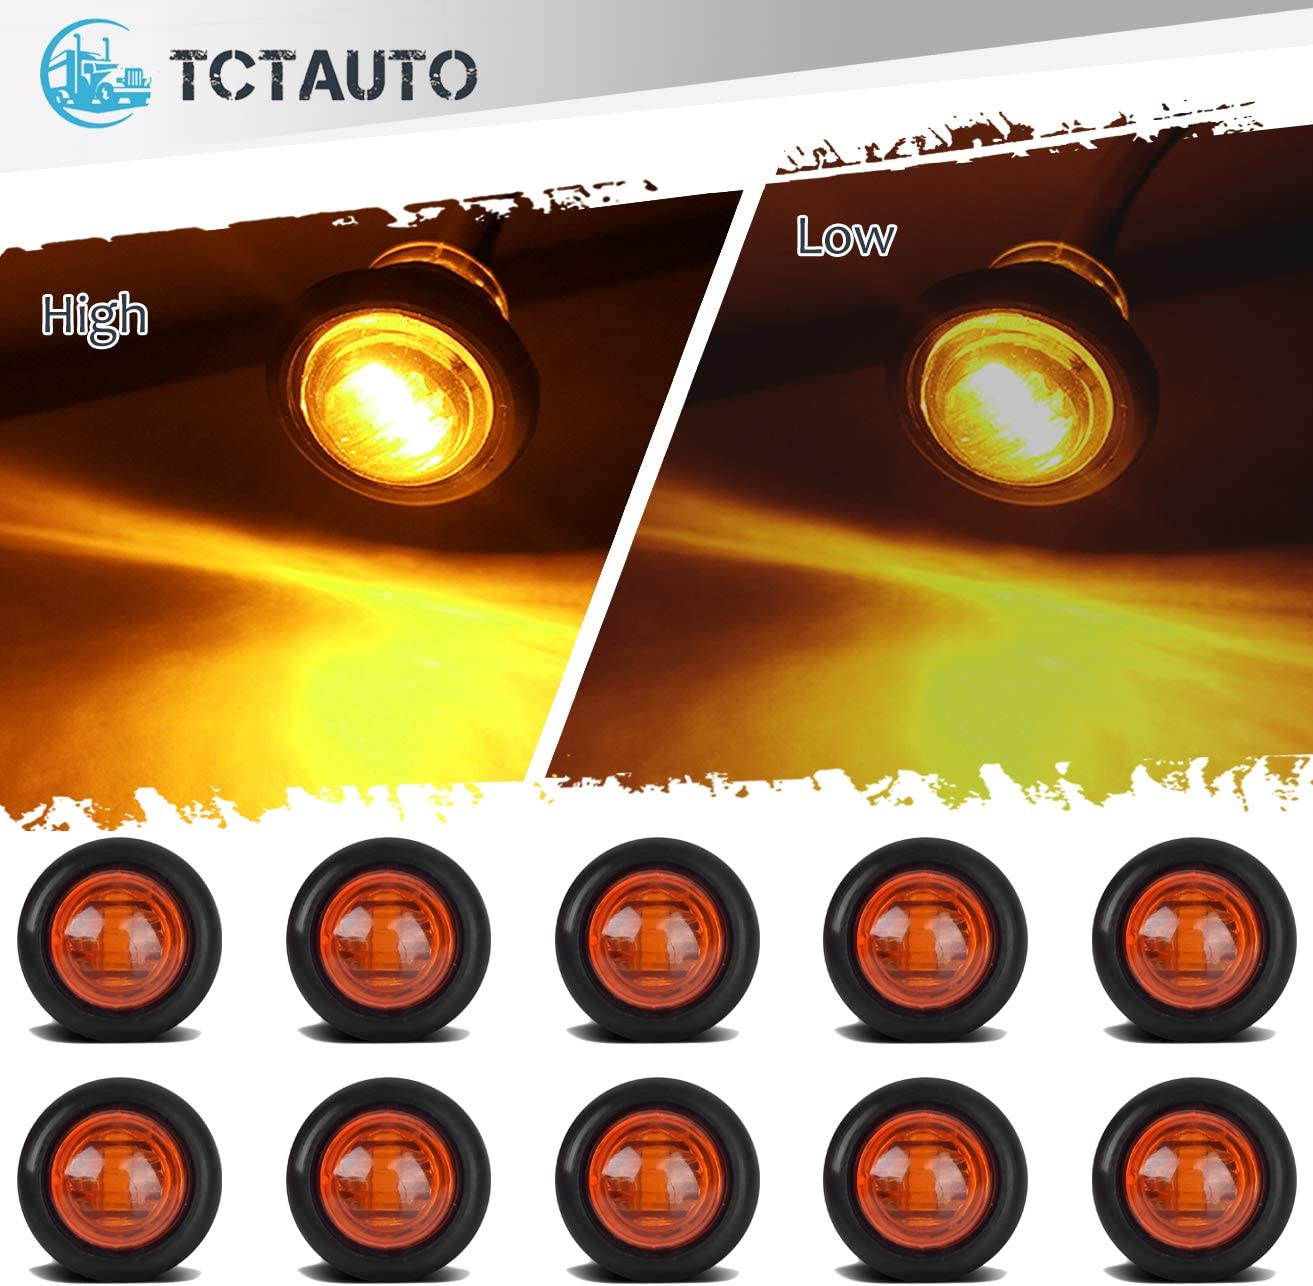 Pack of 10 TCTAuto 3//4 Amber Round LED Marker Stop Turn Signal Light Rubber Grommet Miniature Type with 3 Wire 2 Function High /& Low